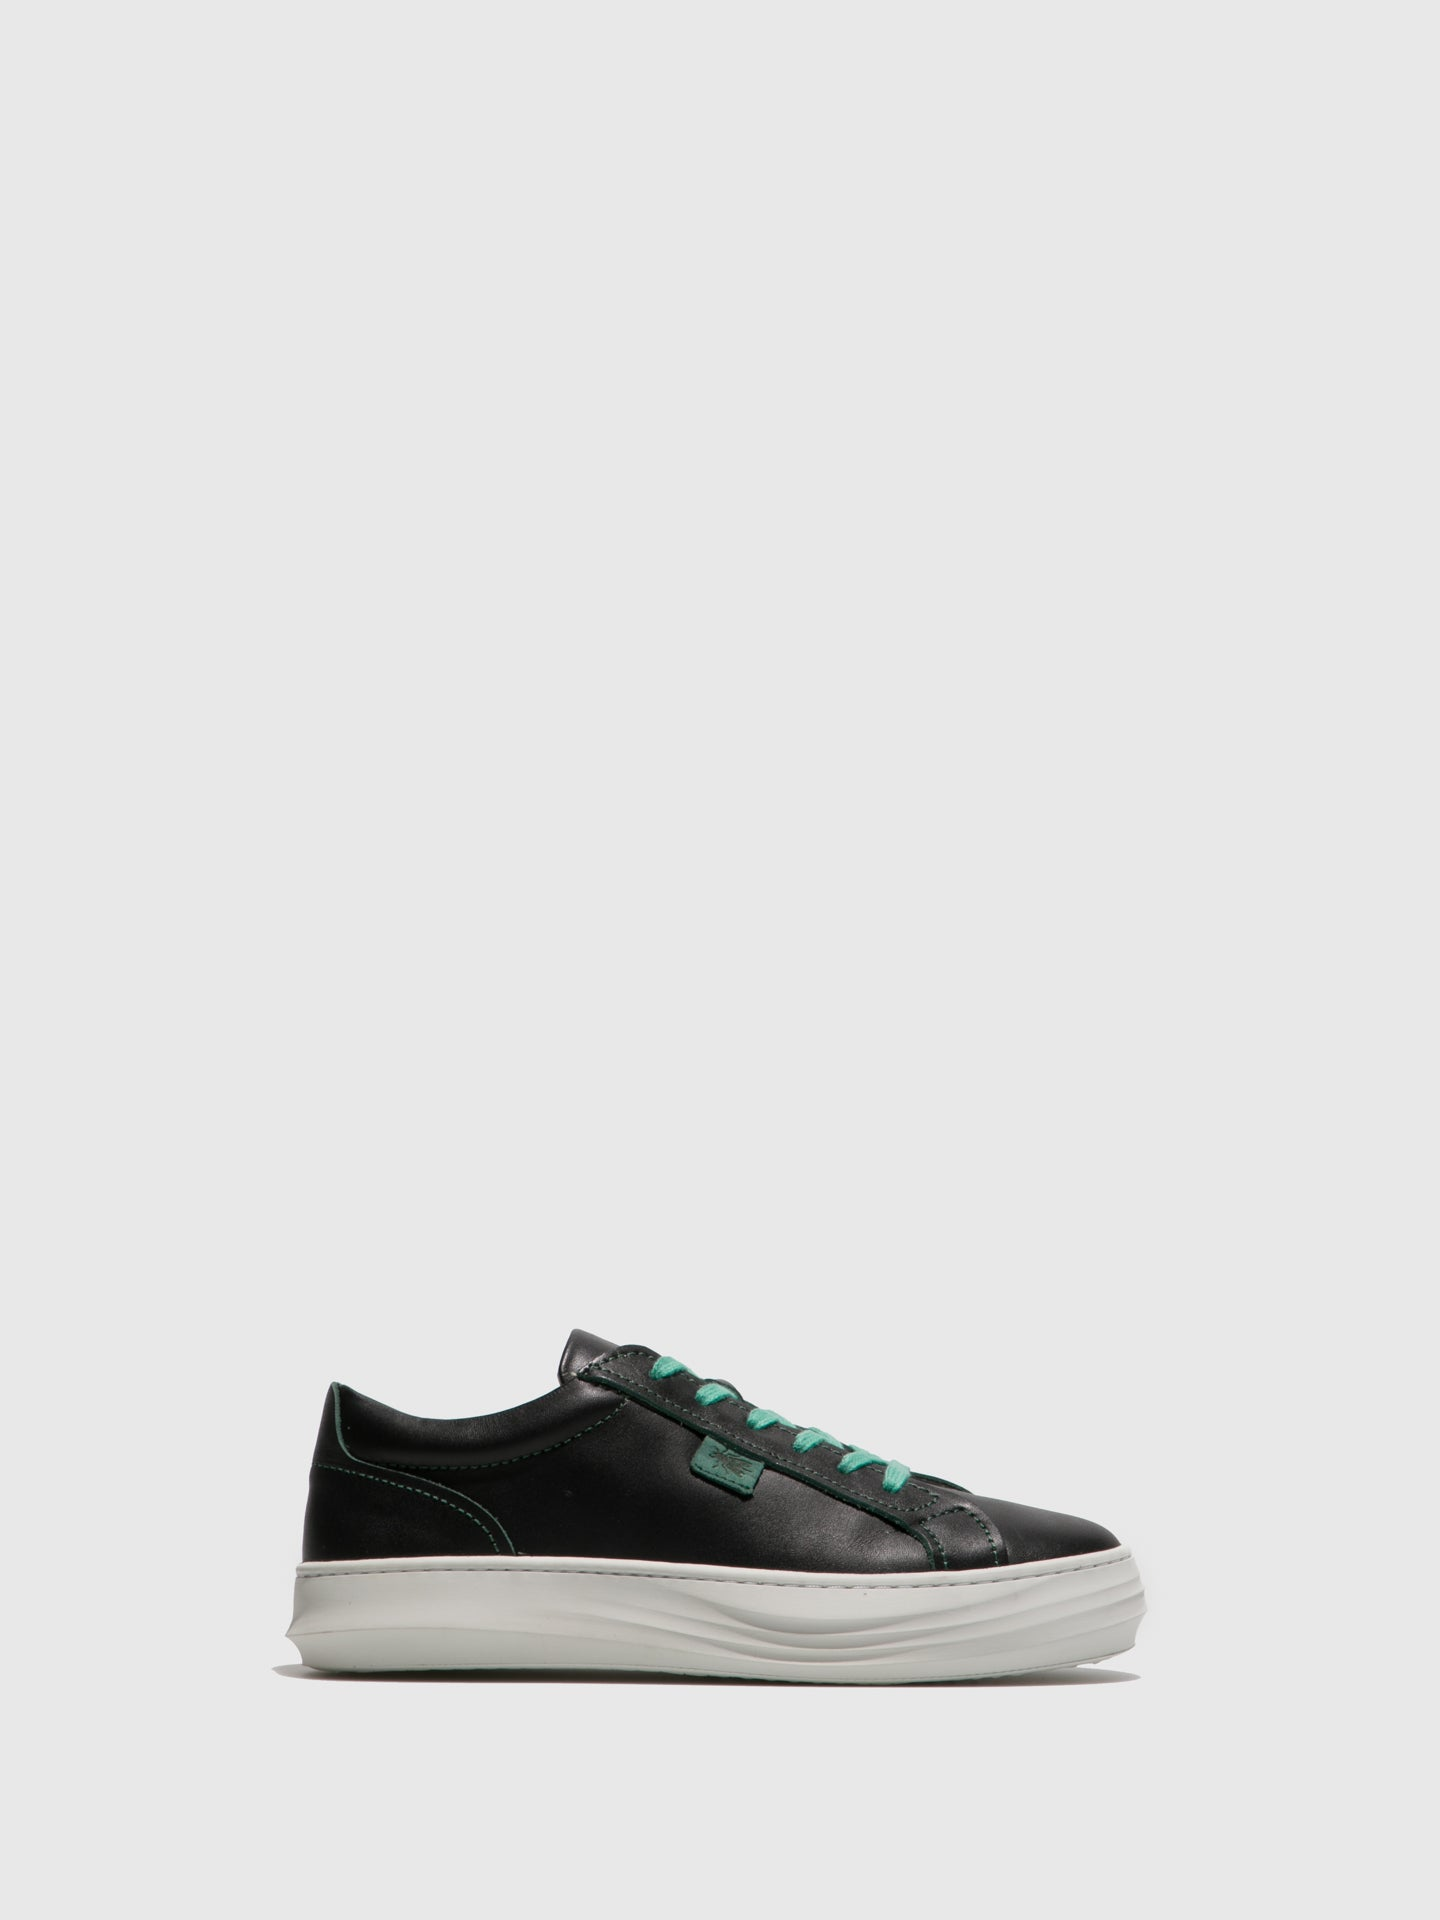 Fly London Black Lace-up Trainers